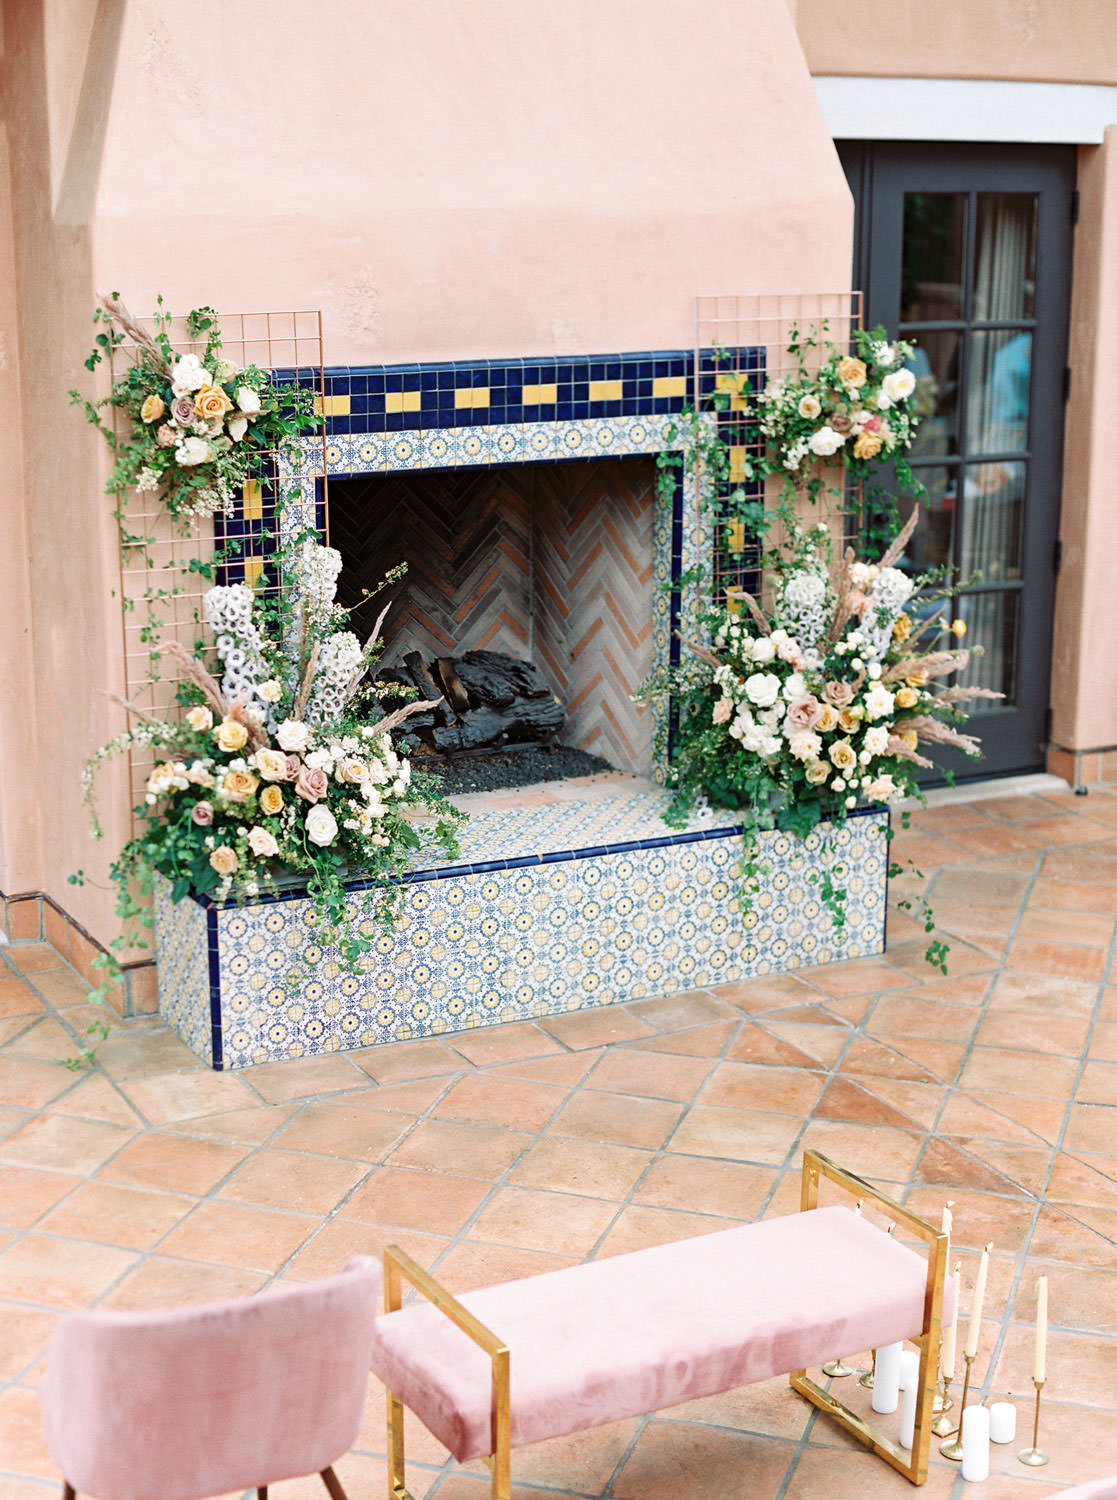 Pink fireplace with blue and golden tiles for ceremony backdrop adorned with large floral installations. Mauve blush velvet chairs and bench for ceremony seating. Honey and Beekeeper Inspired Wedding on sunrise terrace patio at Rancho Valencia on film by Cavin Elizabeth Photography